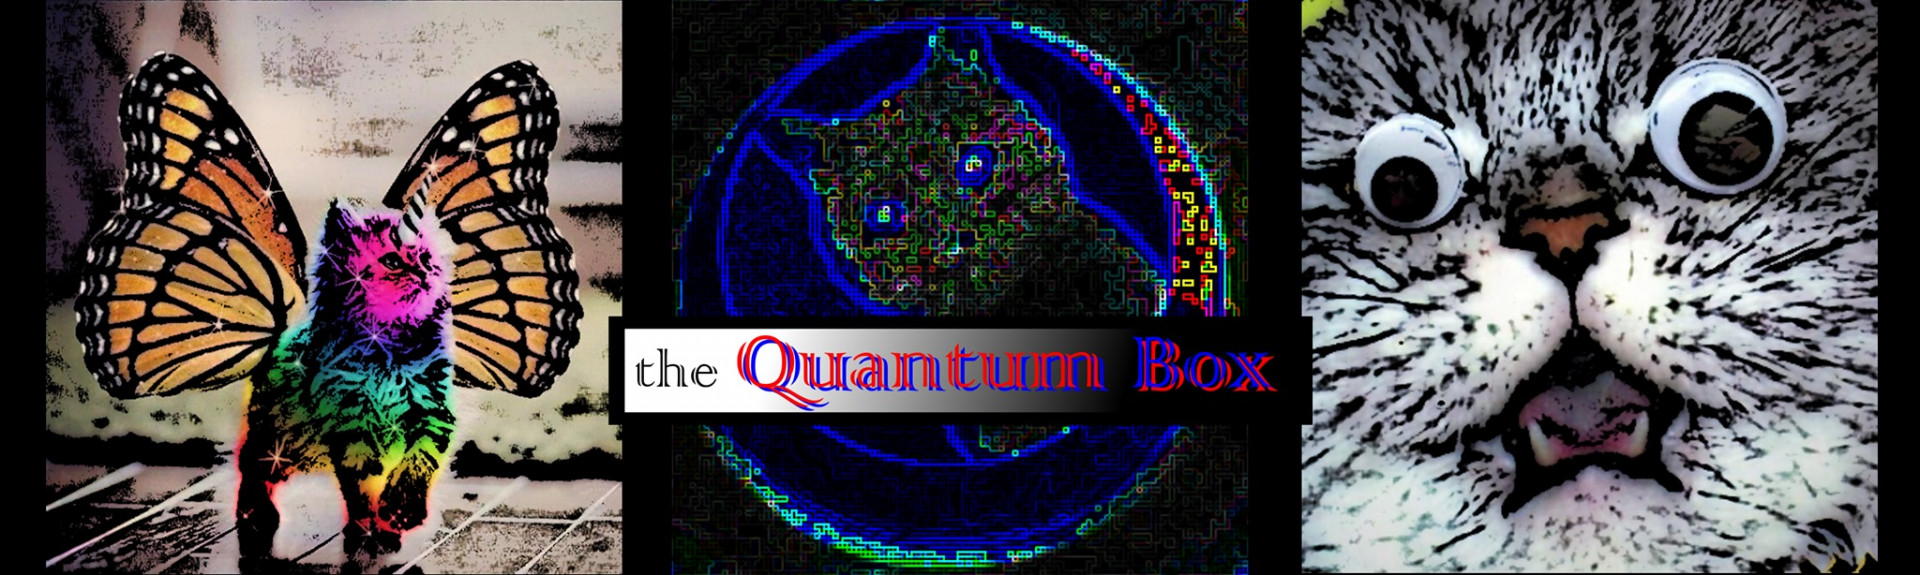 the Quantum Box